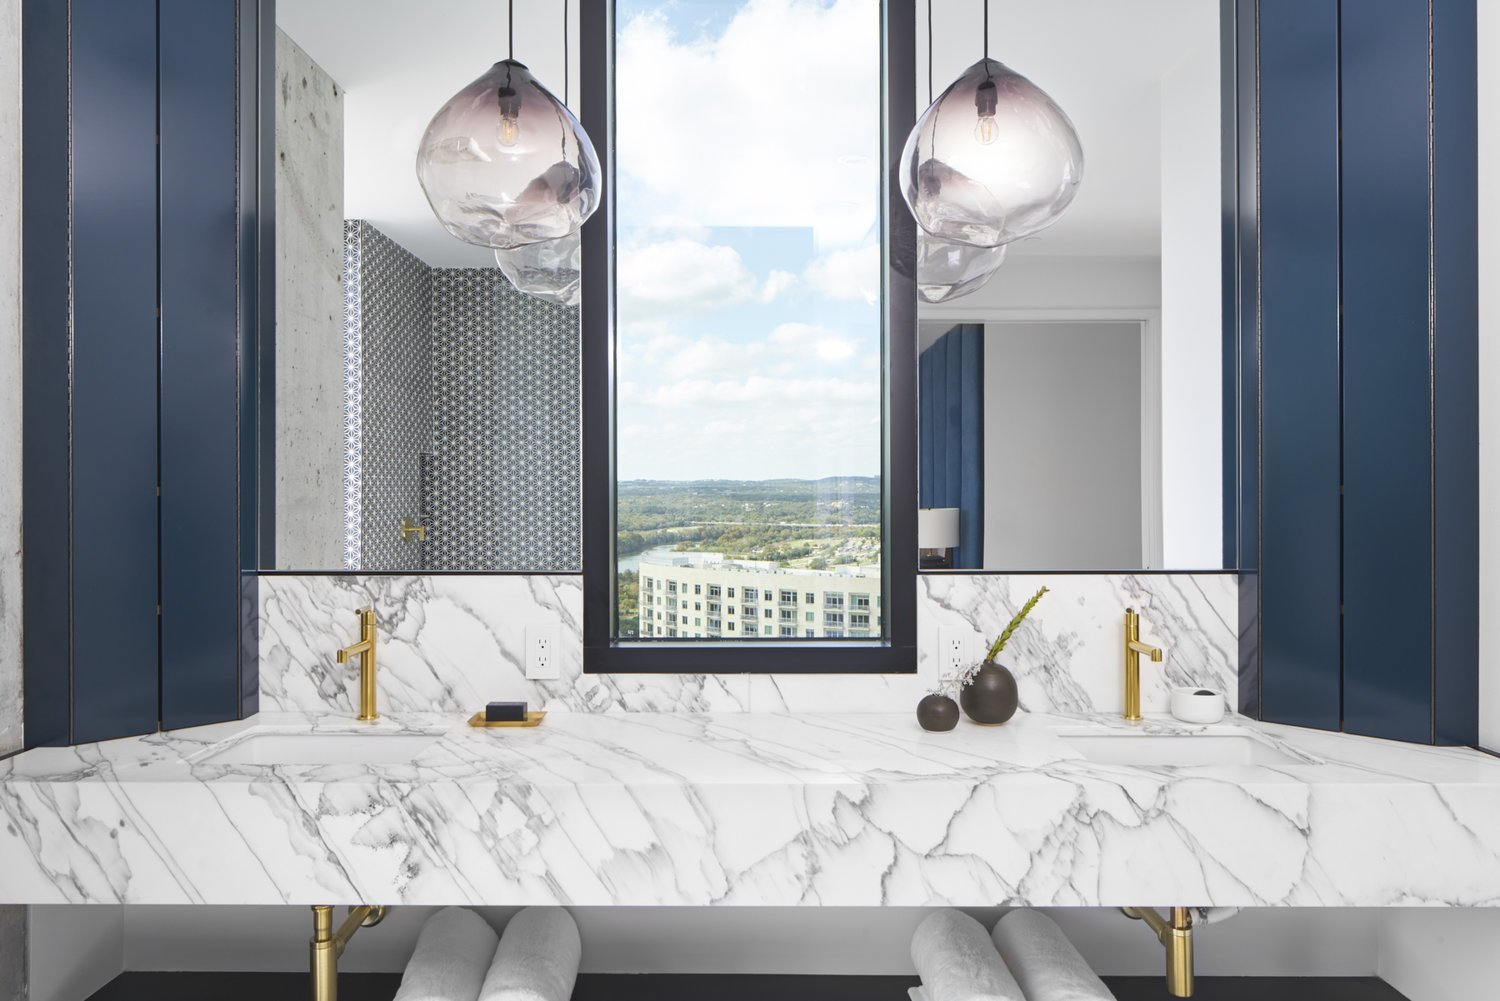 Bath Room, Marble Counter, Ceramic Tile Floor, Open Shower, Drop In Sink, and Pendant Lighting The master bathroom is designed with Carrara marble counters, blue cabinets and brass hardware sinks.   Seaholm Custom Condo by SLIC Design